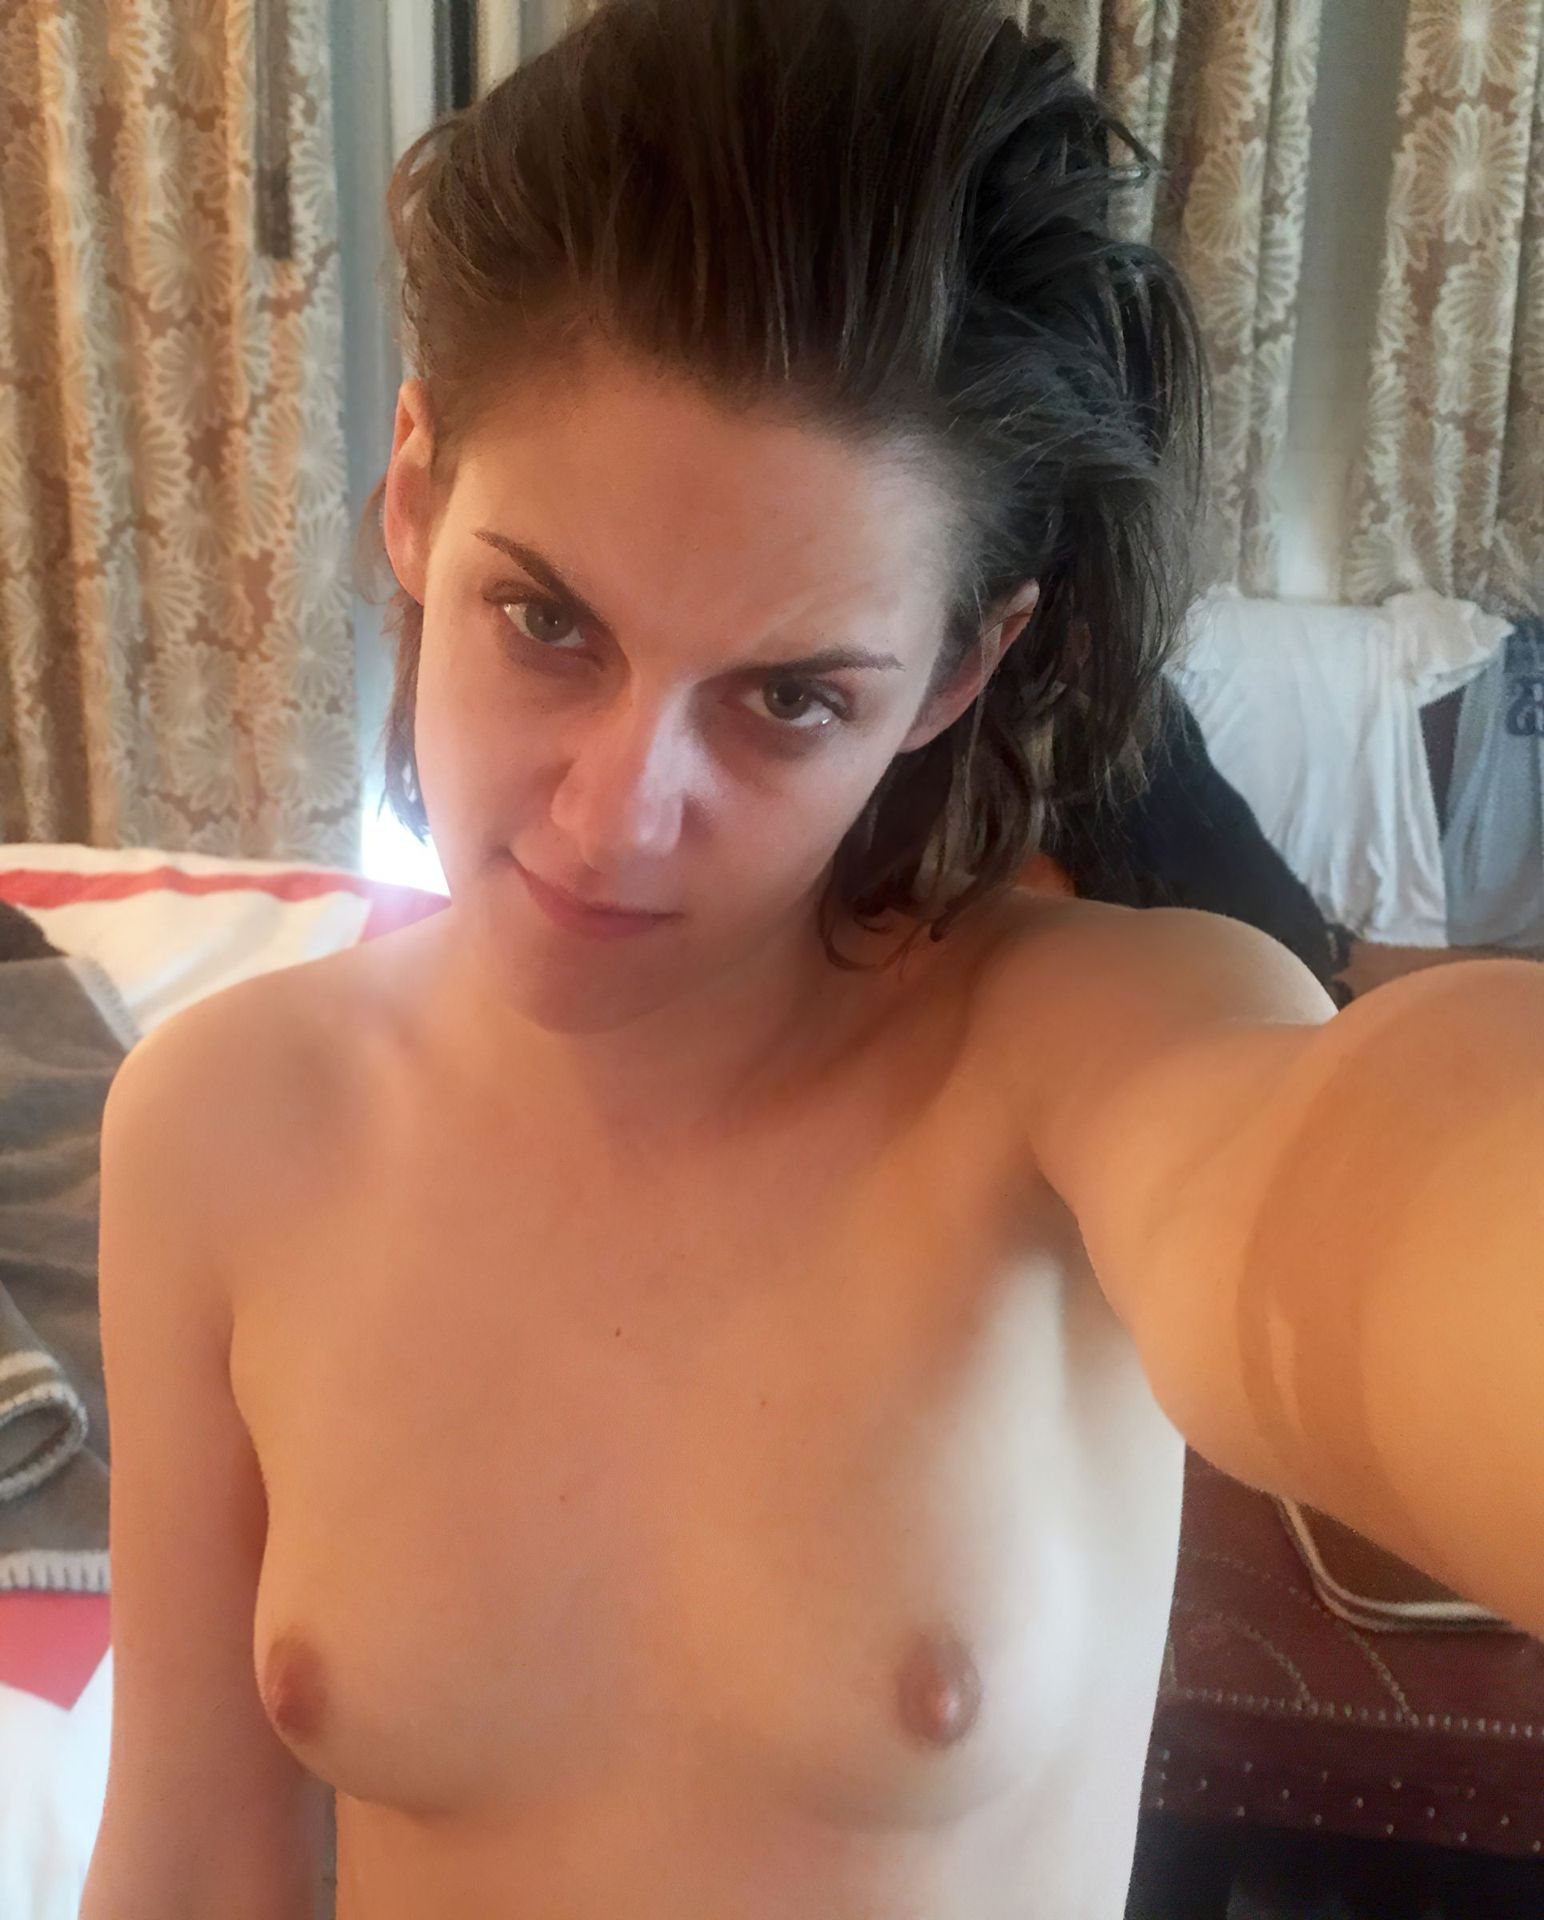 Kristen Stewart Nude Leaked The Fappening Complete Collection 0089